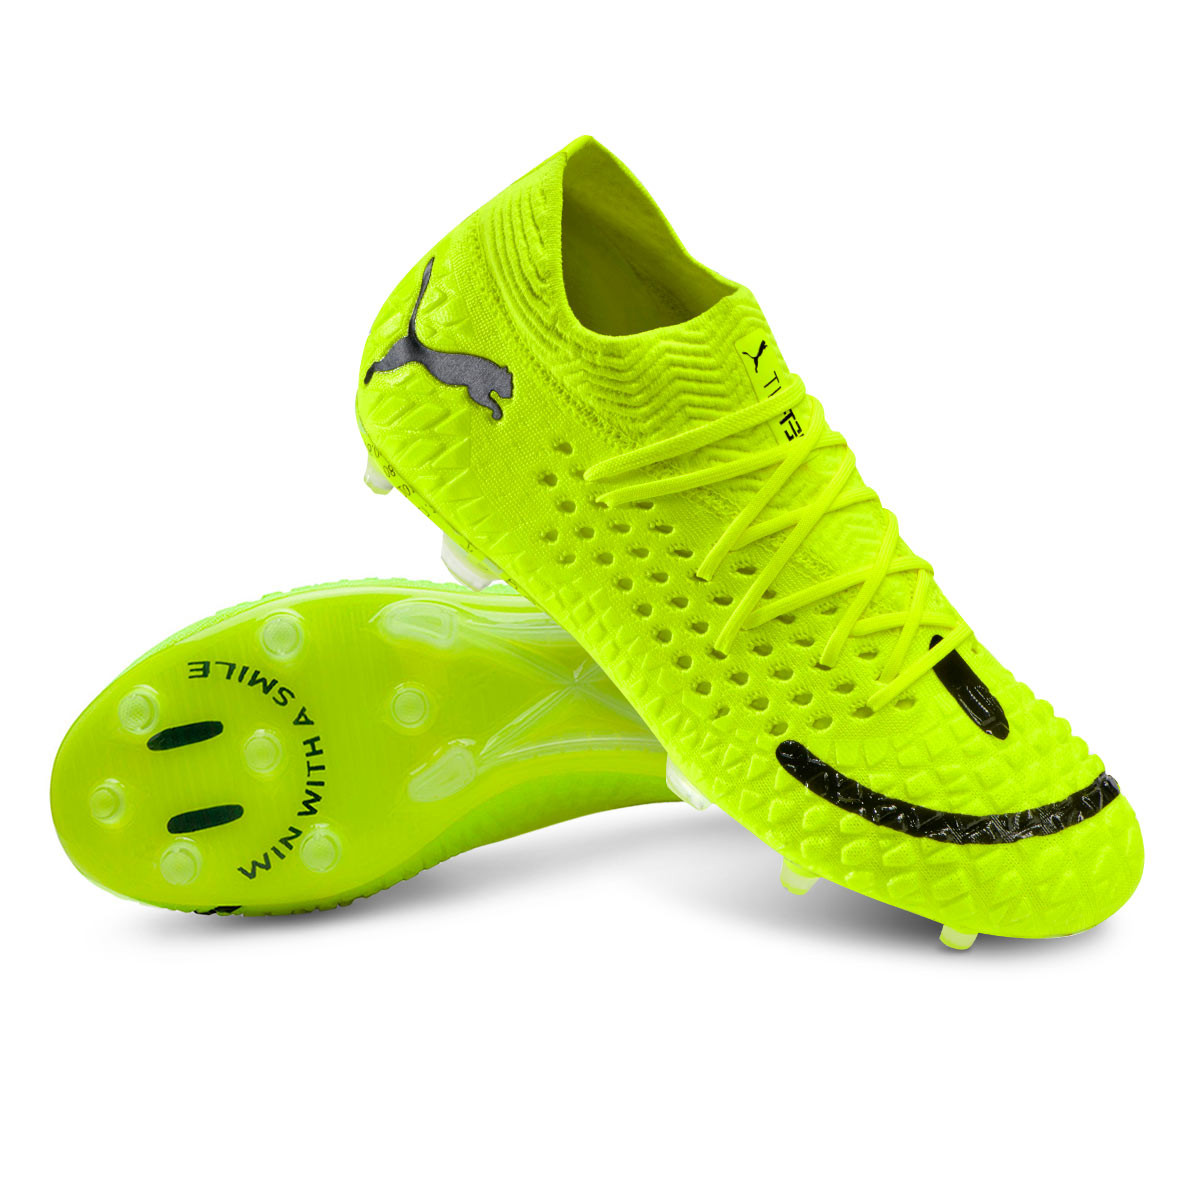 Puma Future 4.1 NETFIT Grizi FG/AG Football Boots